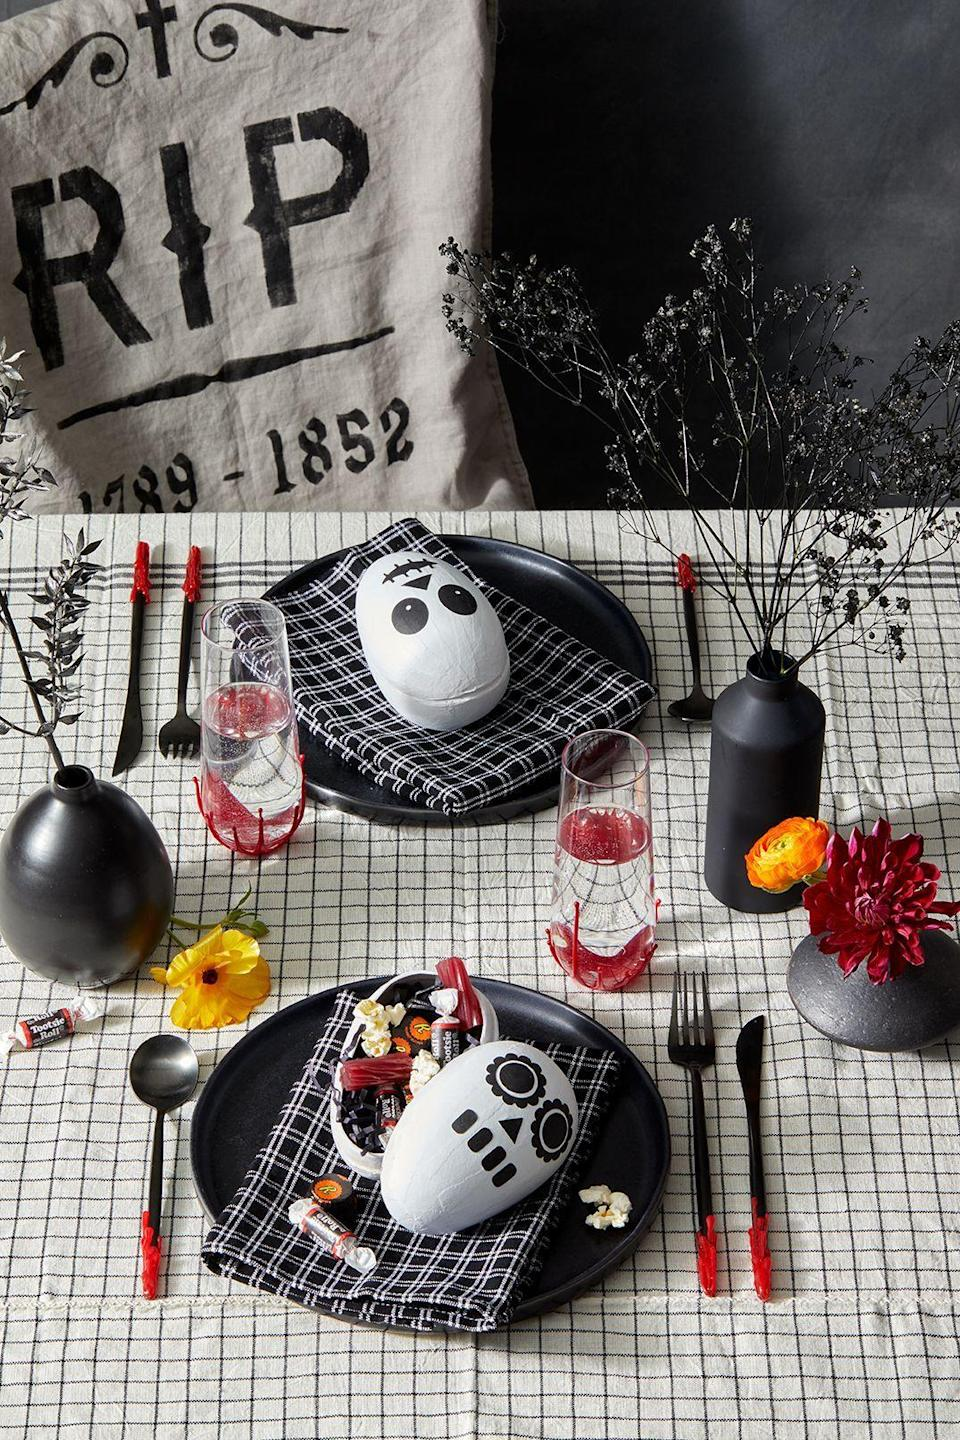 """<p>There's no better time to show off your creativity than Halloween. Whether you're partial to gory <a href=""""https://www.goodhousekeeping.com/holidays/halloween-ideas/g28378572/amazon-halloween-decorations/"""" rel=""""nofollow noopener"""" target=""""_blank"""" data-ylk=""""slk:Halloween decorations"""" class=""""link rapid-noclick-resp"""">Halloween decorations</a> (<a href=""""https://www.goodhousekeeping.com/holidays/halloween-ideas/a24170356/diy-witch-costume/"""" rel=""""nofollow noopener"""" target=""""_blank"""" data-ylk=""""slk:witches"""" class=""""link rapid-noclick-resp"""">witches</a>, anyone?) or prefer to keep it cute and simple, like these <a href=""""https://www.goodhousekeeping.com/holidays/halloween-ideas/g22062770/halloween-crafts-for-kids/"""" rel=""""nofollow noopener"""" target=""""_blank"""" data-ylk=""""slk:crafts for kids"""" class=""""link rapid-noclick-resp"""">crafts for kids</a>, you can land on the right ideas to delight your family, <a href=""""https://www.goodhousekeeping.com/holidays/halloween-ideas/g28340854/adult-halloween-party-games/"""" rel=""""nofollow noopener"""" target=""""_blank"""" data-ylk=""""slk:party guests"""" class=""""link rapid-noclick-resp"""">party guests</a> and trick-or-treaters. </p><p>There's so much to consider when it comes to Halloween decorating. Beyond revamping your <a href=""""https://www.goodhousekeeping.com/holidays/halloween-ideas/g32948621/halloween-door-decorations/"""" rel=""""nofollow noopener"""" target=""""_blank"""" data-ylk=""""slk:front door"""" class=""""link rapid-noclick-resp"""">front door</a> (a <a href=""""https://www.goodhousekeeping.com/holidays/halloween-ideas/g79/diy-halloween-wreaths/"""" rel=""""nofollow noopener"""" target=""""_blank"""" data-ylk=""""slk:festive wreath"""" class=""""link rapid-noclick-resp"""">festive wreath</a> is always a good idea), there's room to <a href=""""https://www.goodhousekeeping.com/holidays/halloween-ideas/g28325572/halloween-window-decorations/"""" rel=""""nofollow noopener"""" target=""""_blank"""" data-ylk=""""slk:transform your windows"""" class=""""link rapid-noclick-resp"""">transform your windows</a>, living room mantel and even your dinner """